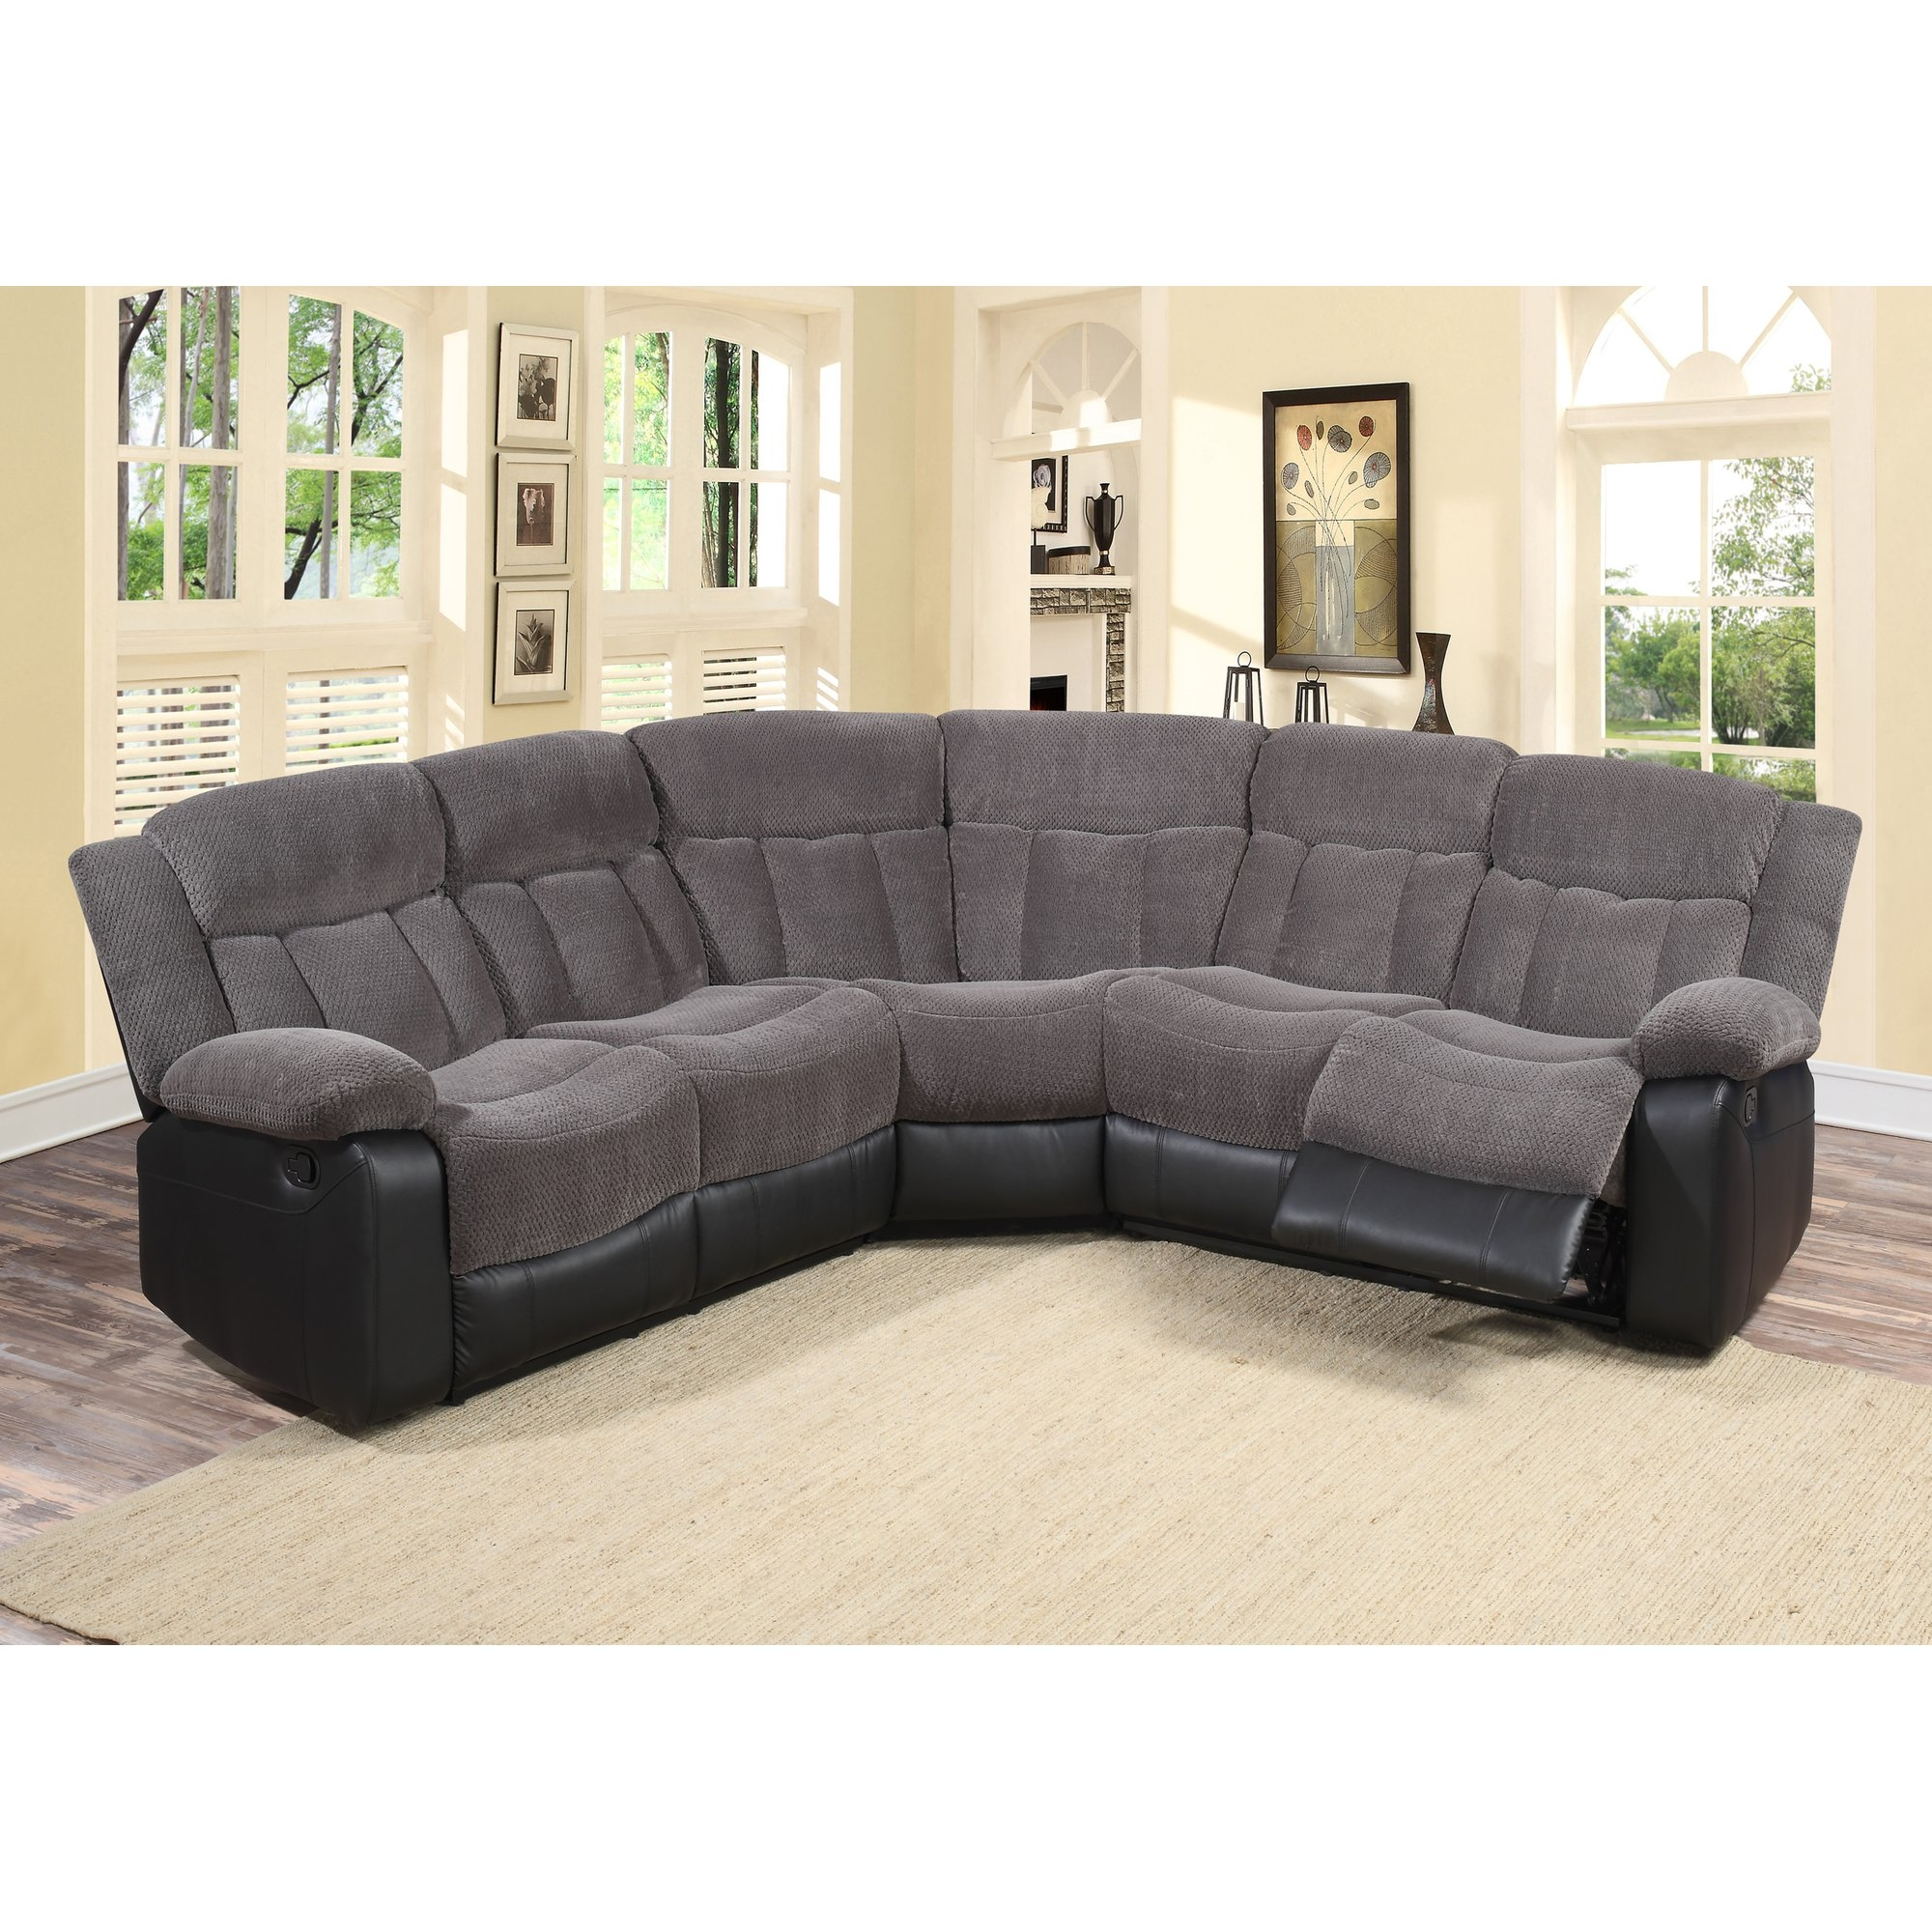 15 Collection of 6 Piece Modular Sectional Sofa  Sofa Ideas